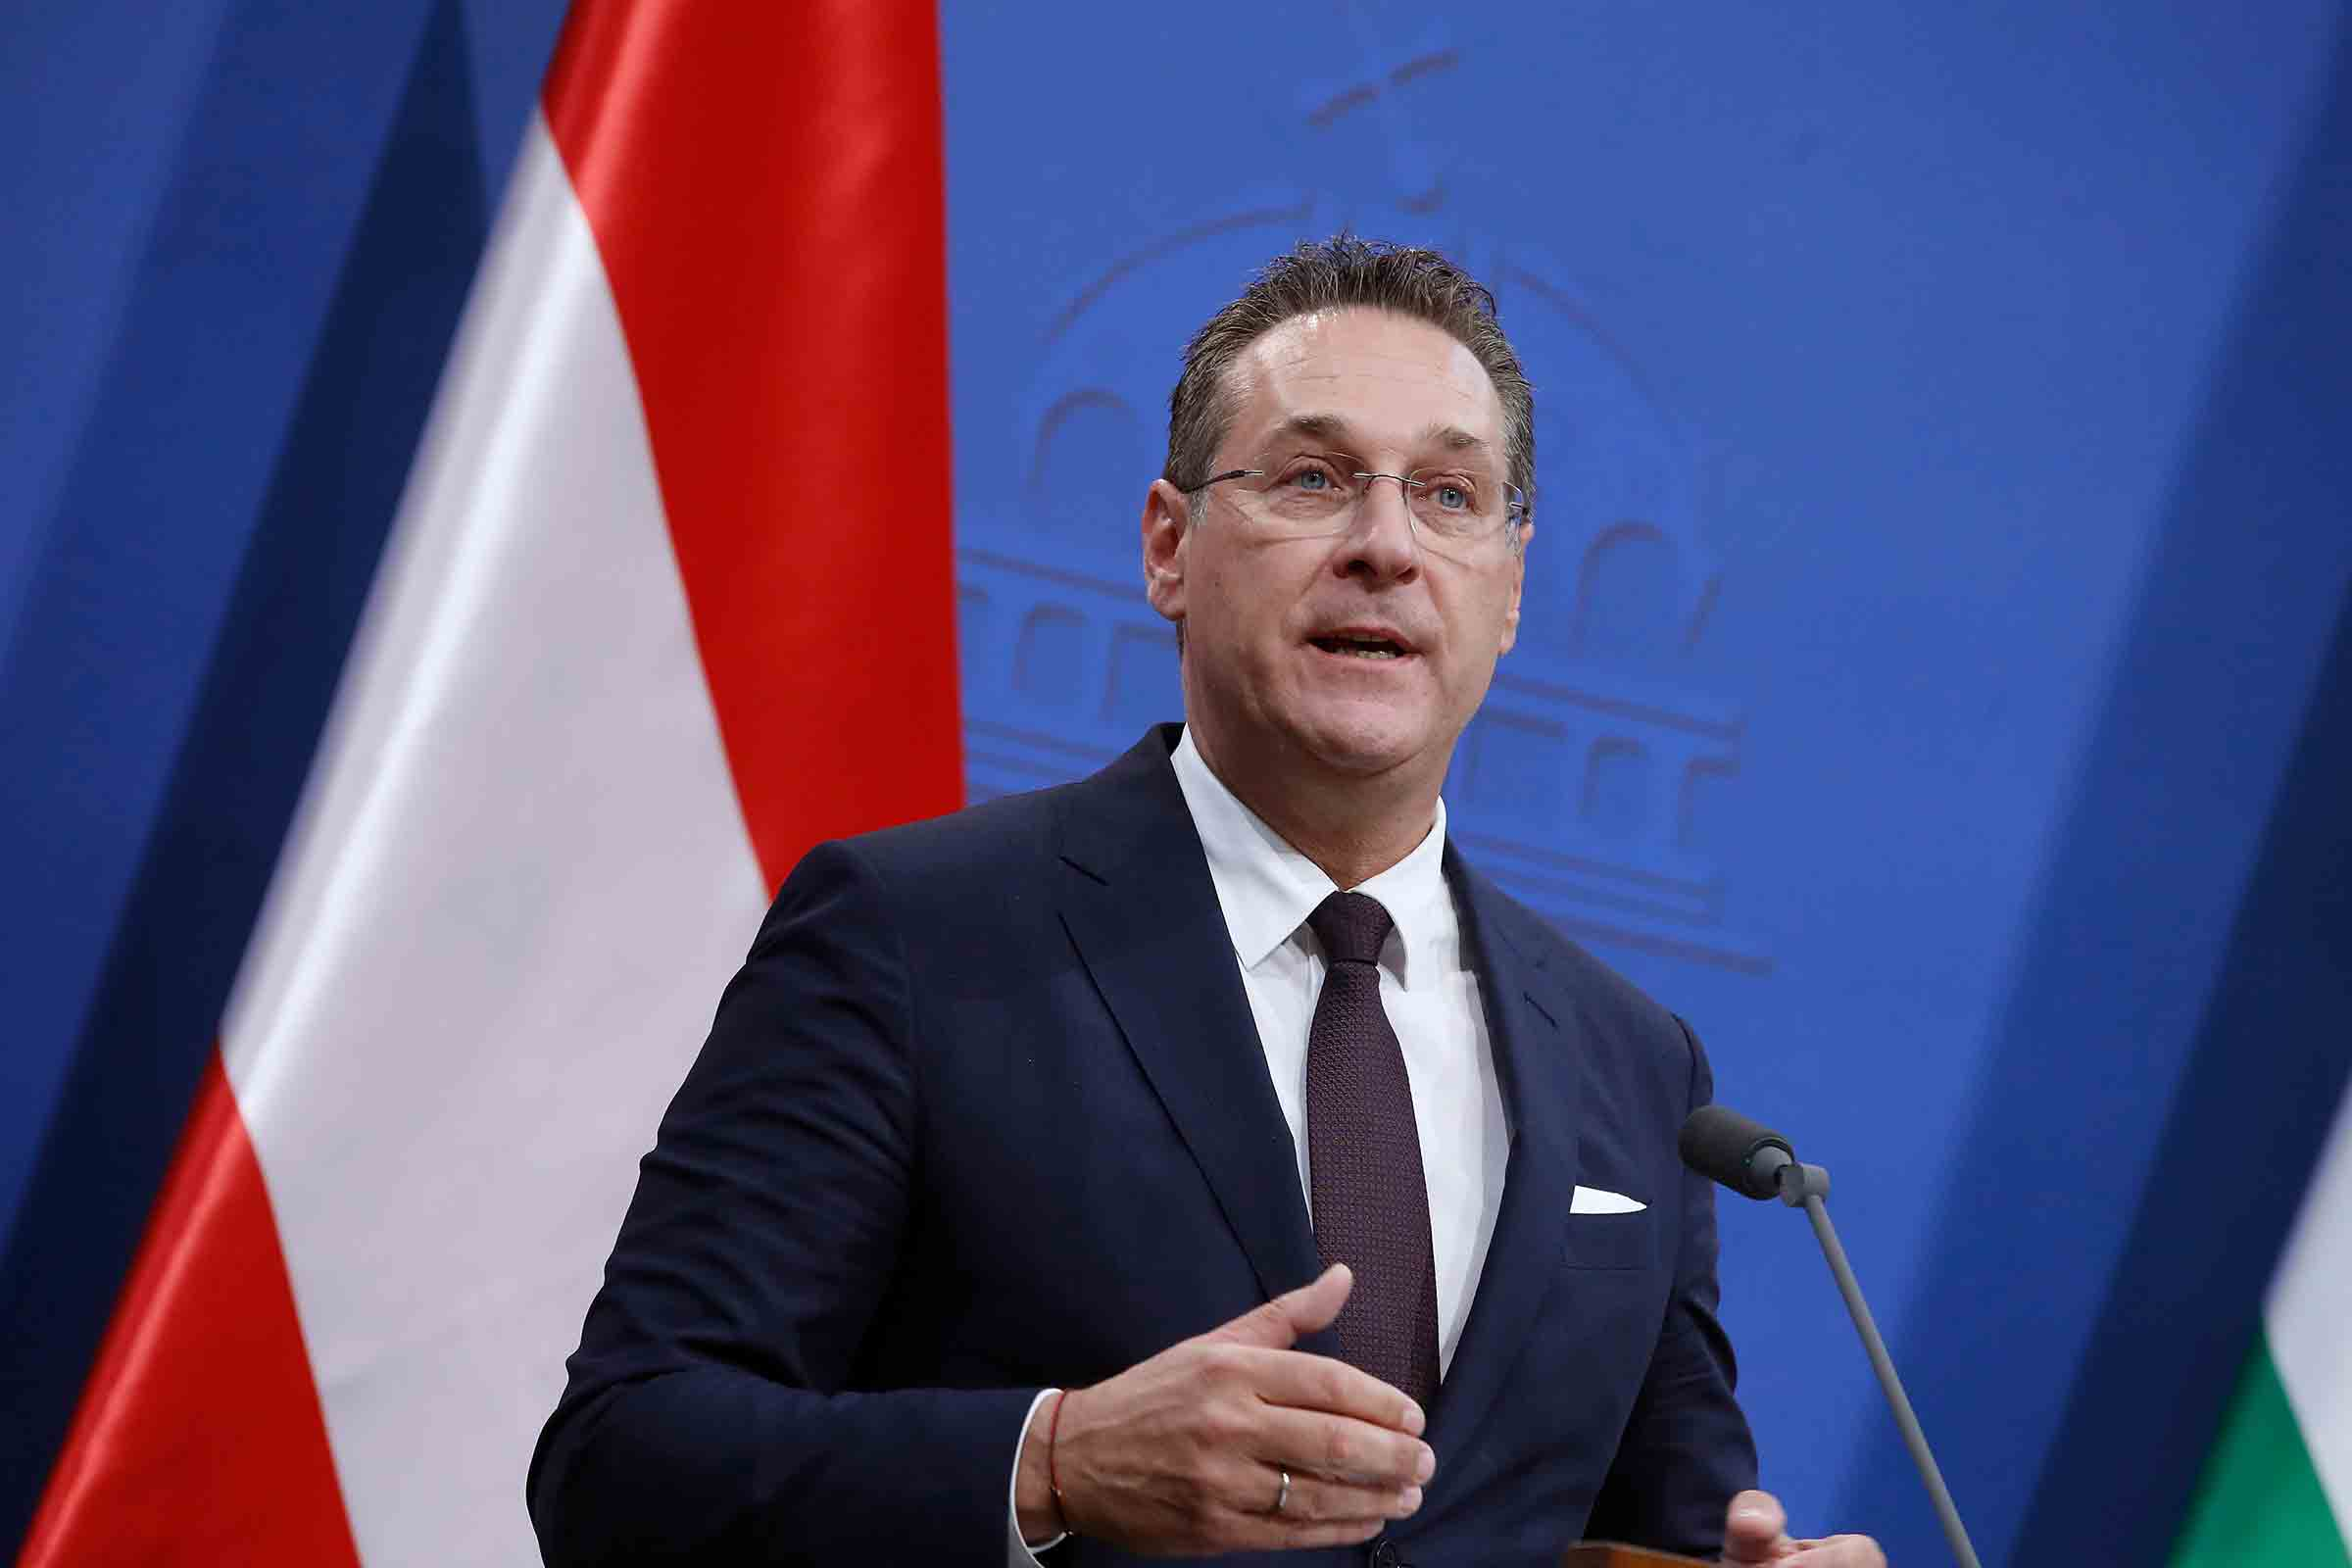 Austrian Vice Chancellor Heinz Christian Strache speaks during a press conference in Budapest, May 6, 2019.